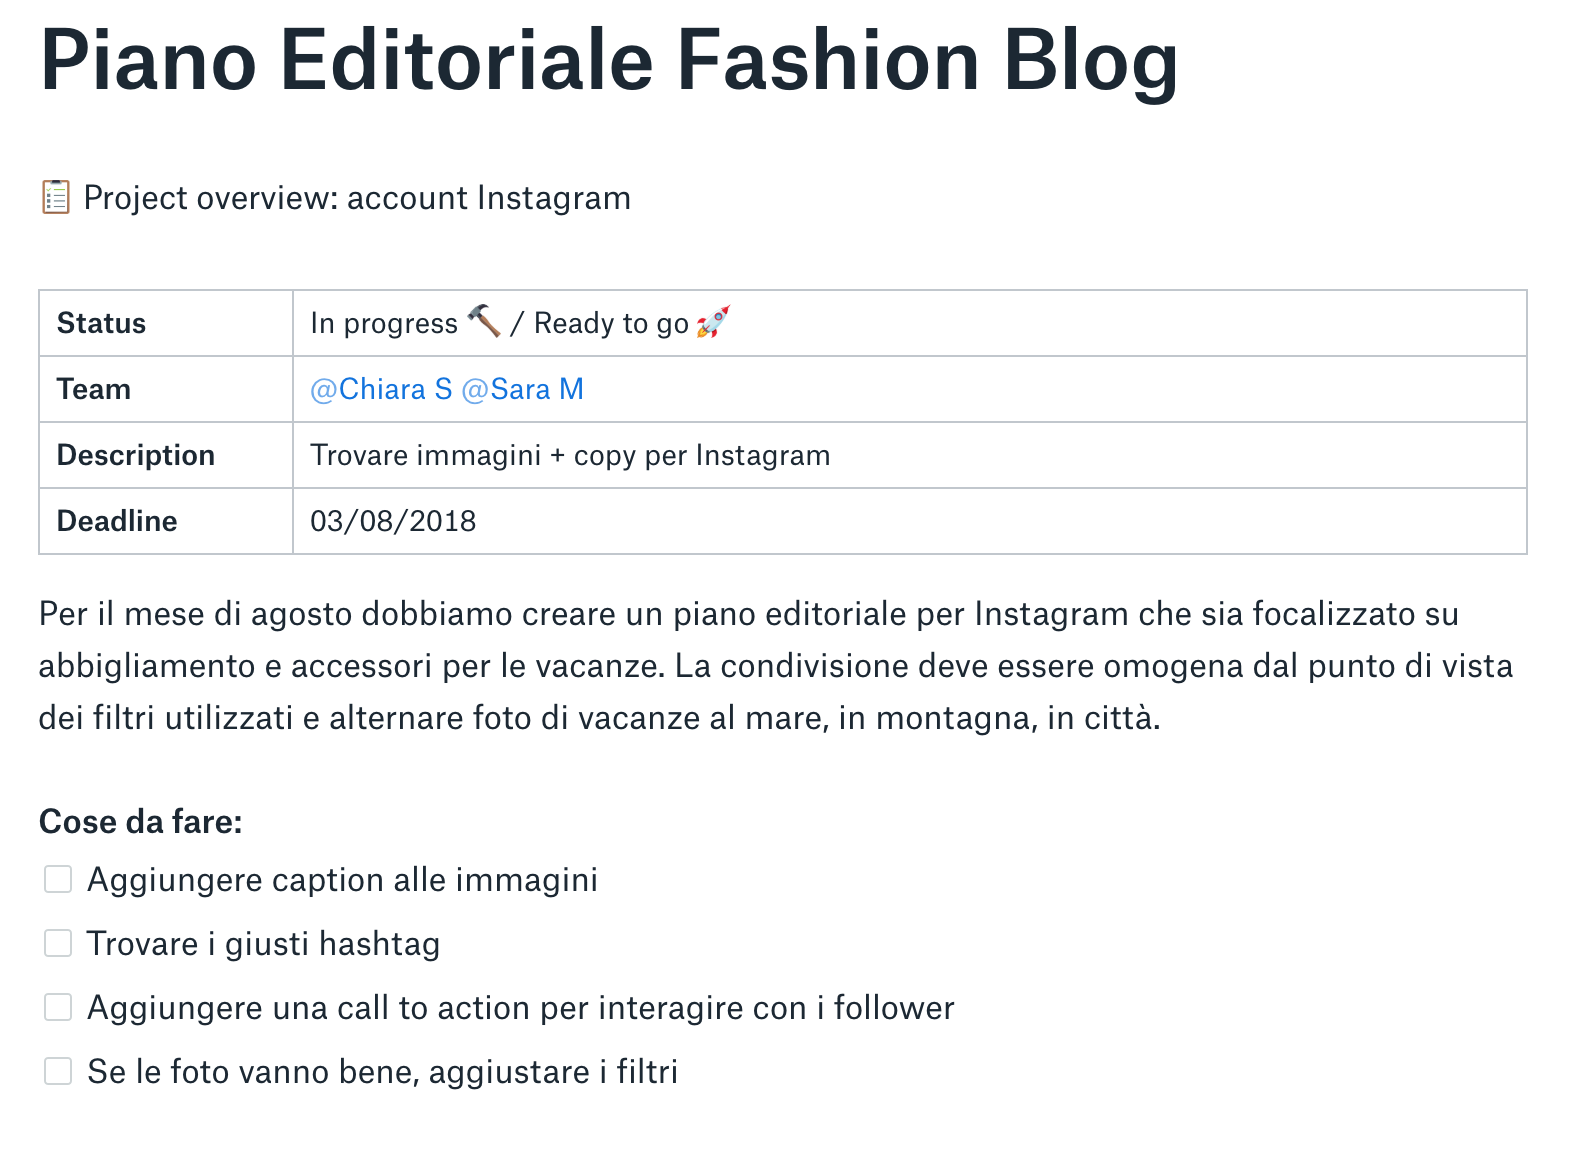 Piano editoriale fashion blog